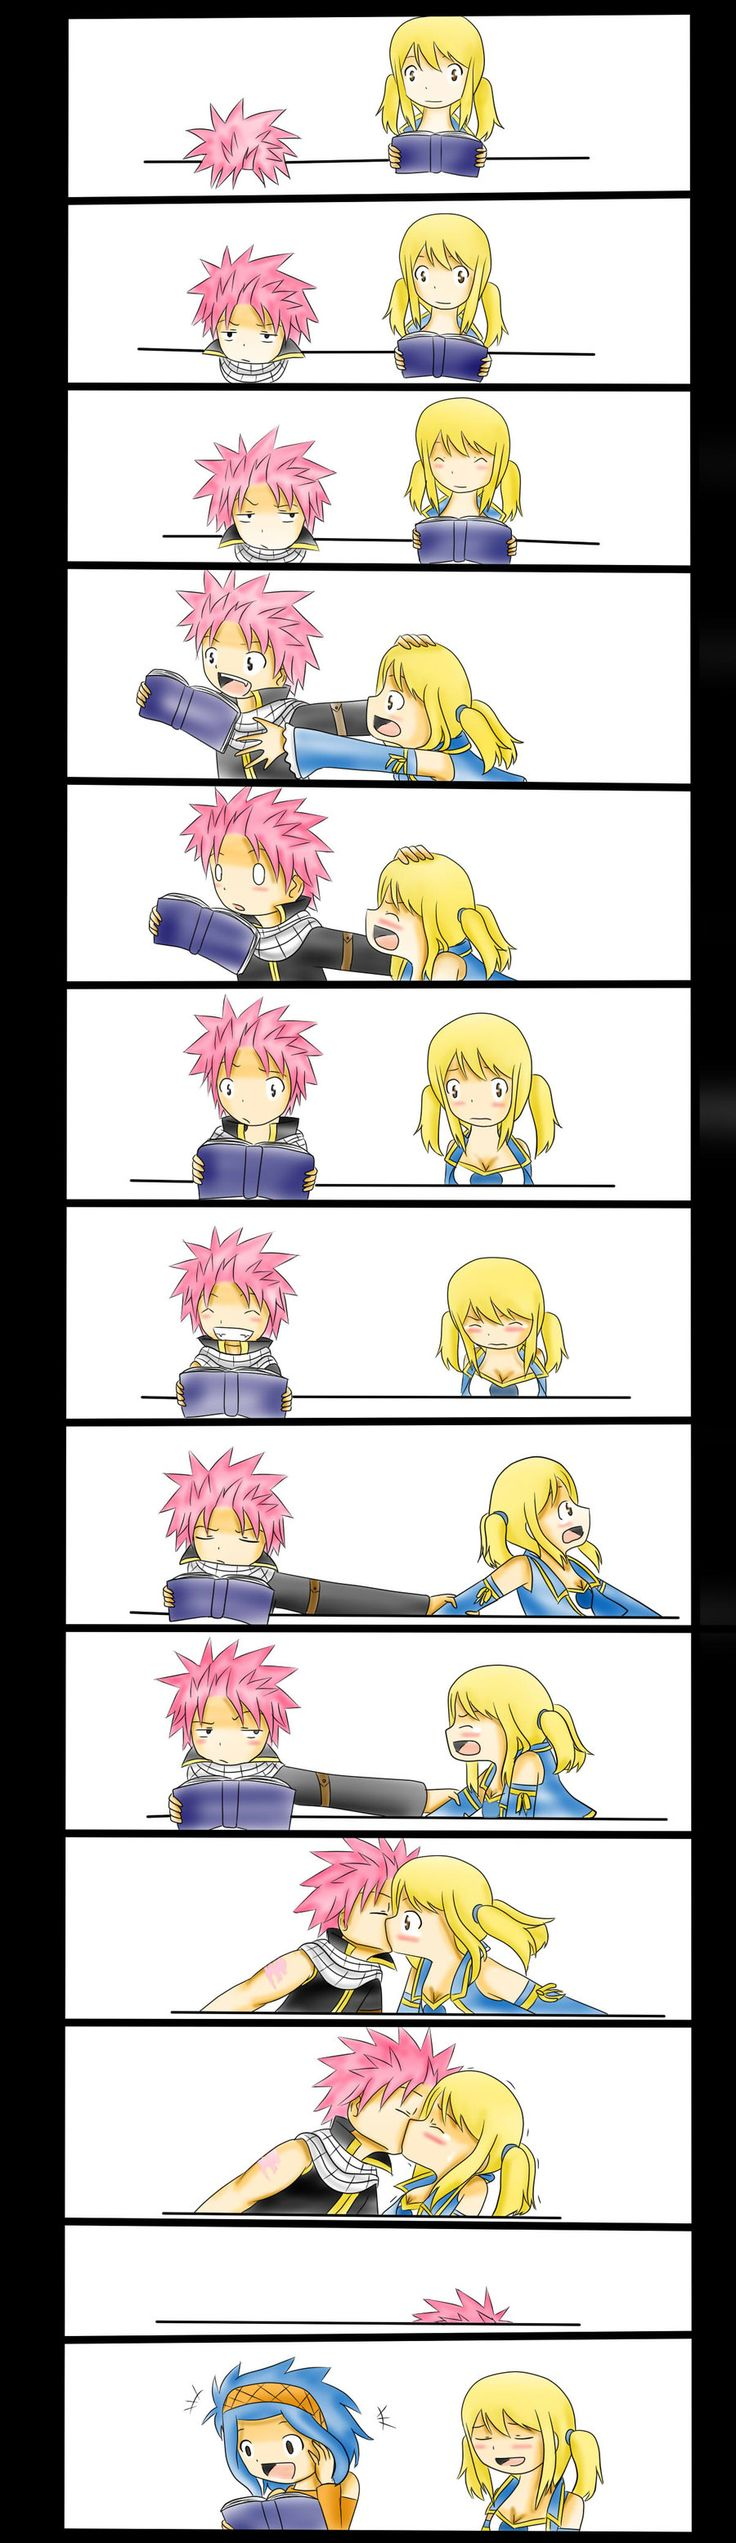 NaLu: A Happy Ending by xmizuwaterx on DeviantArt